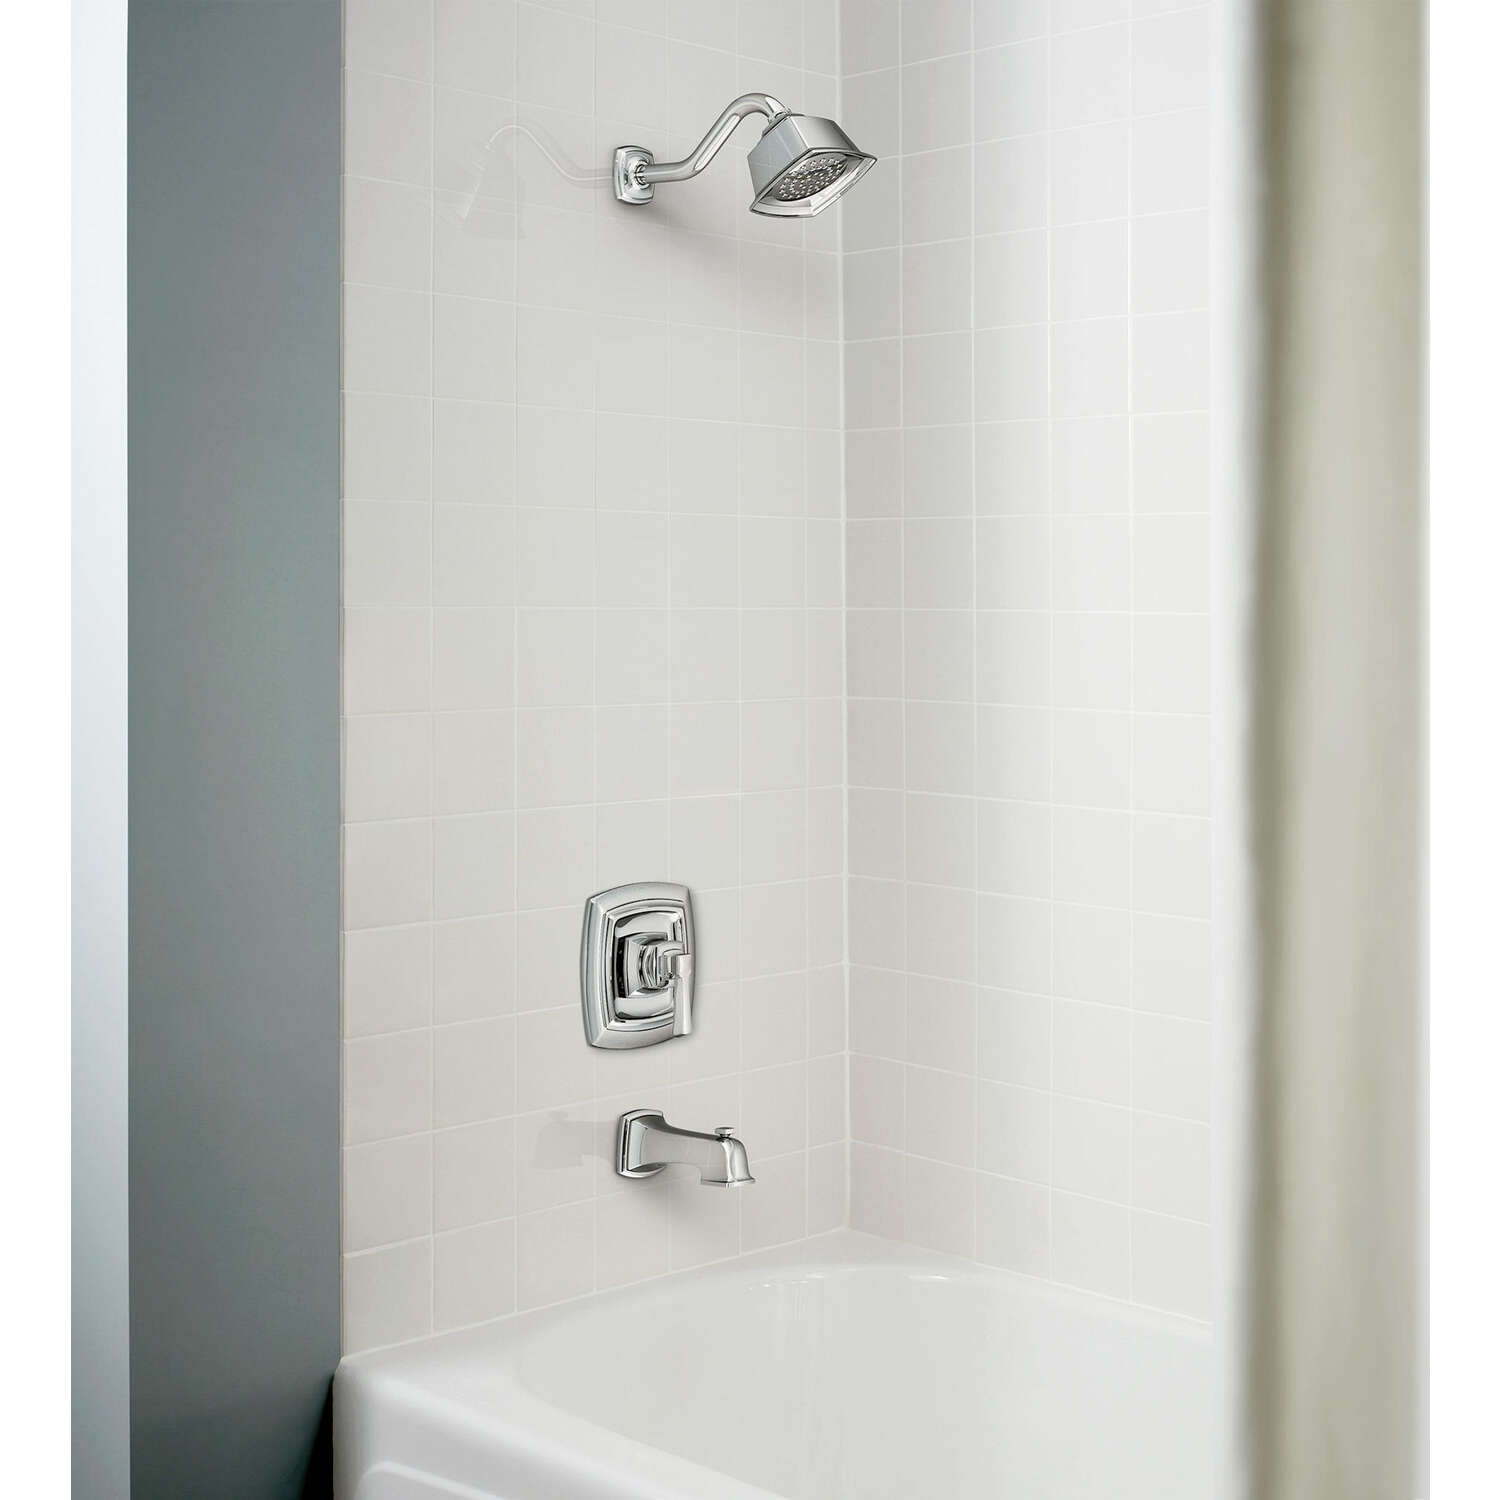 Moen  Boardwalk  One Handle  Tub and Shower Faucet  Chrome Finish Metal Material